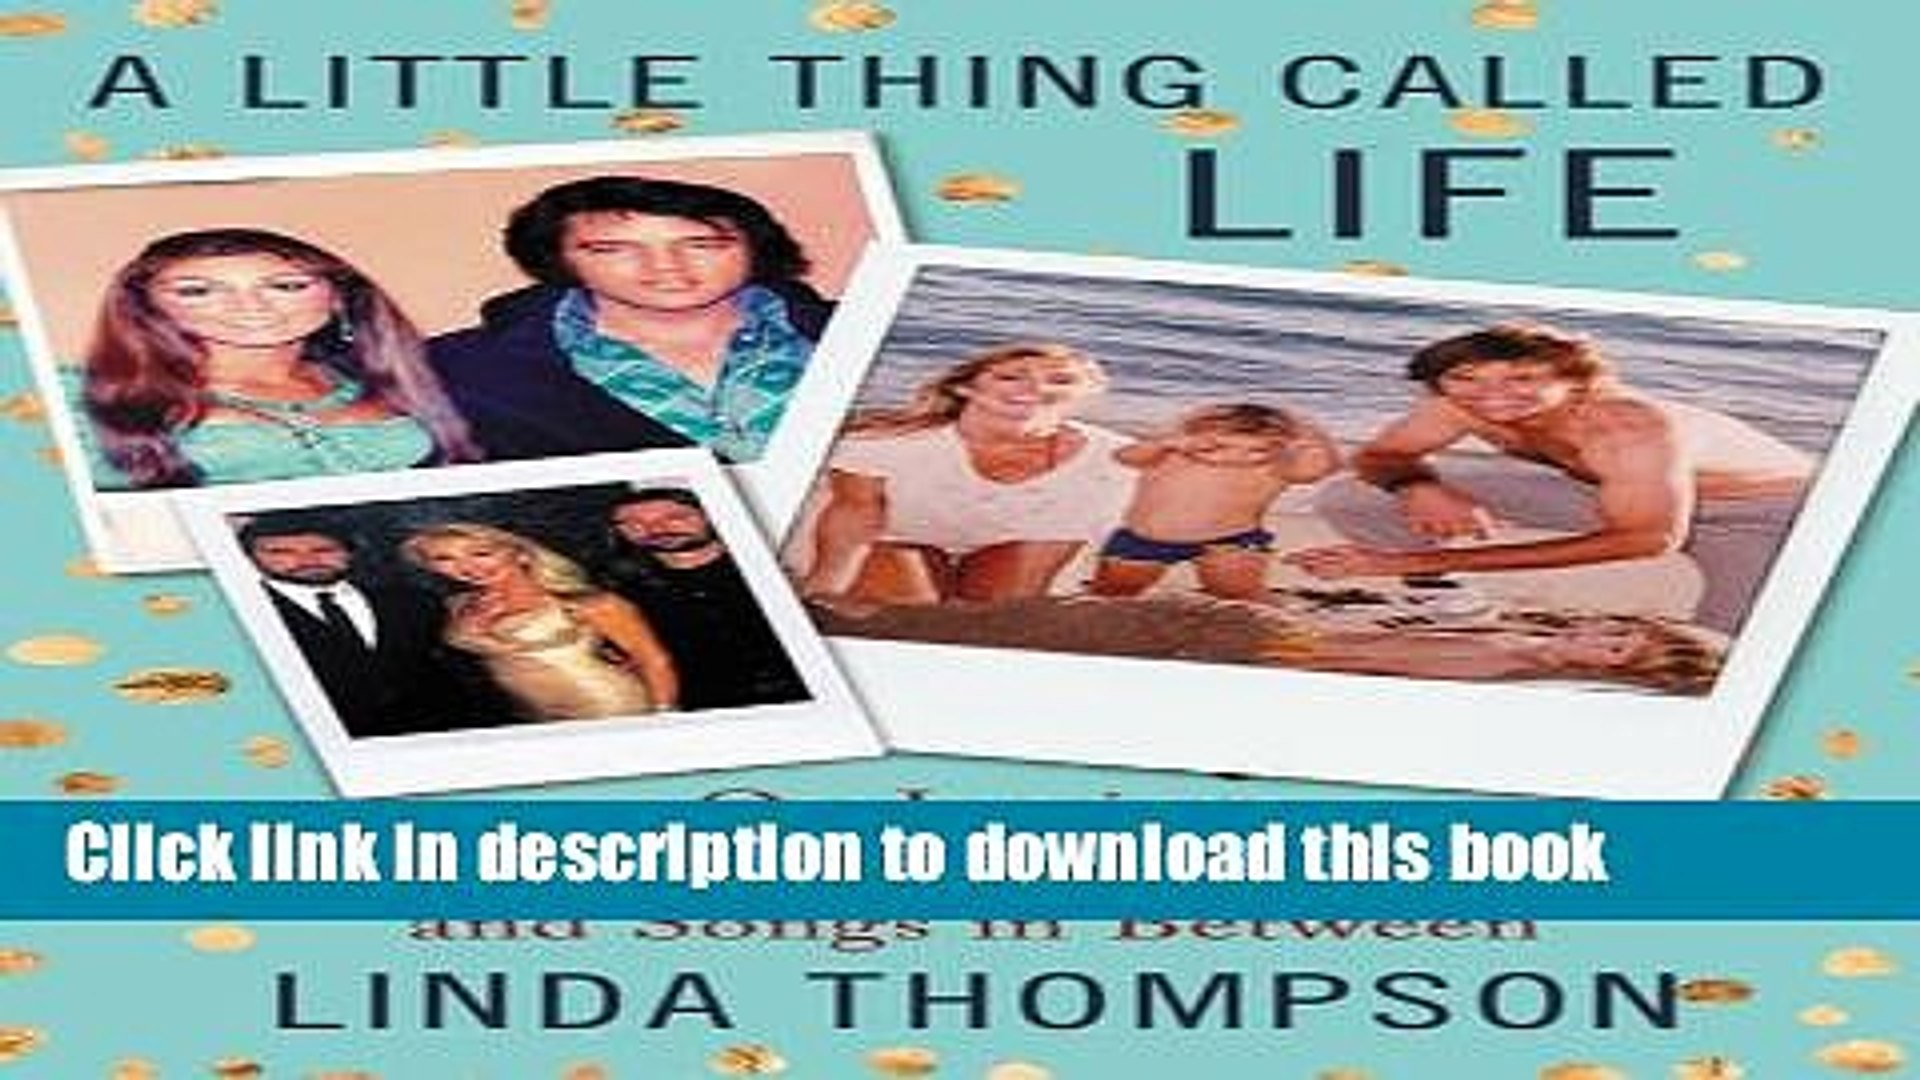 [Download] A Little Thing Called Life: On Loving Elvis Presley, Bruce Jenner, and Songs in Between